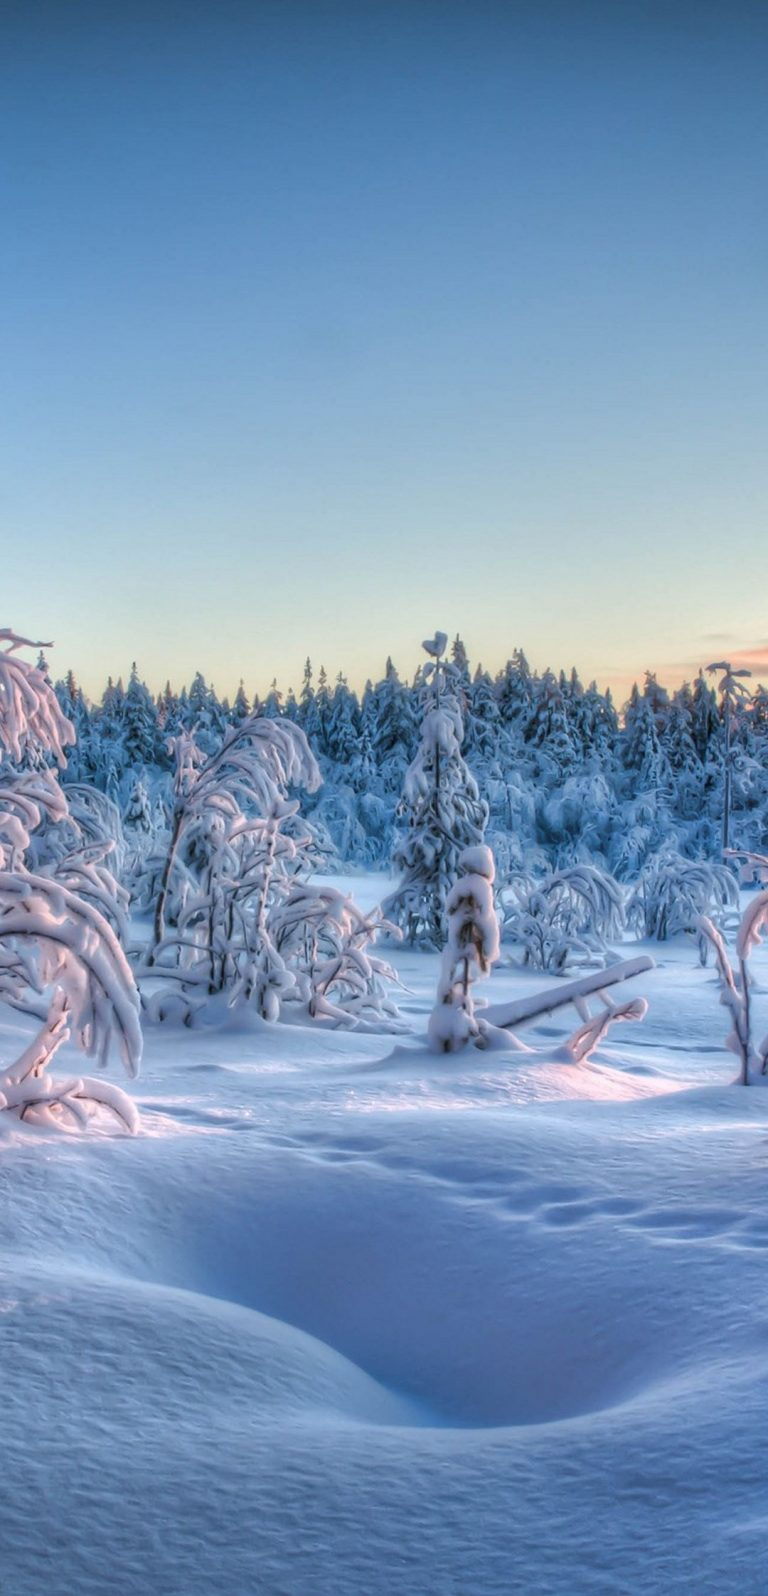 Winter Trees Forest Snow Landscape 1080x2244 768x1596